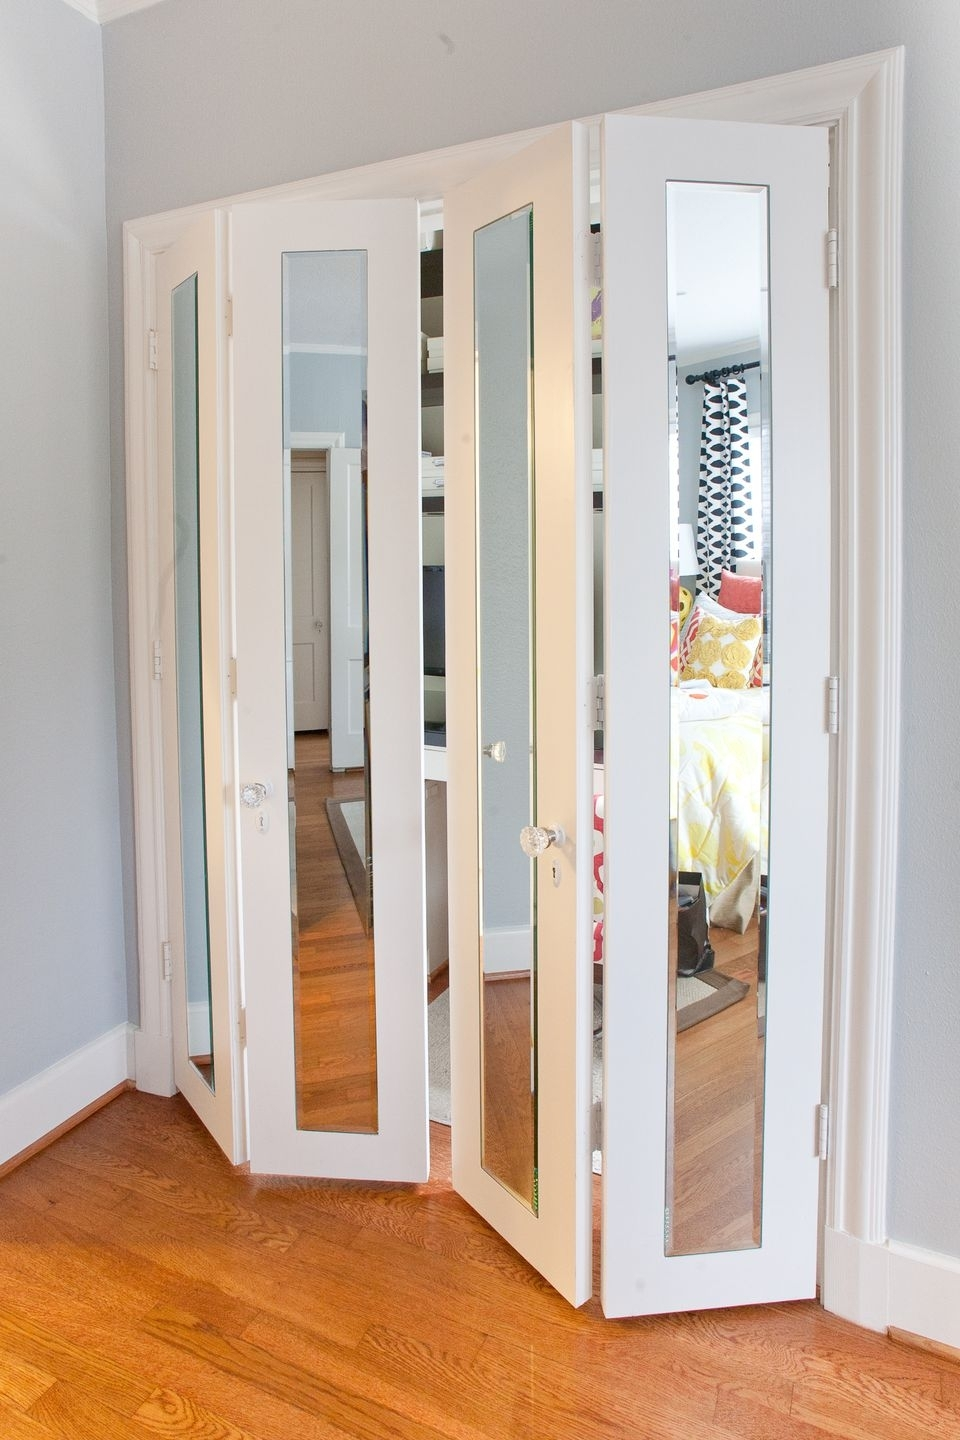 5 Foot Mirror Closet Doors